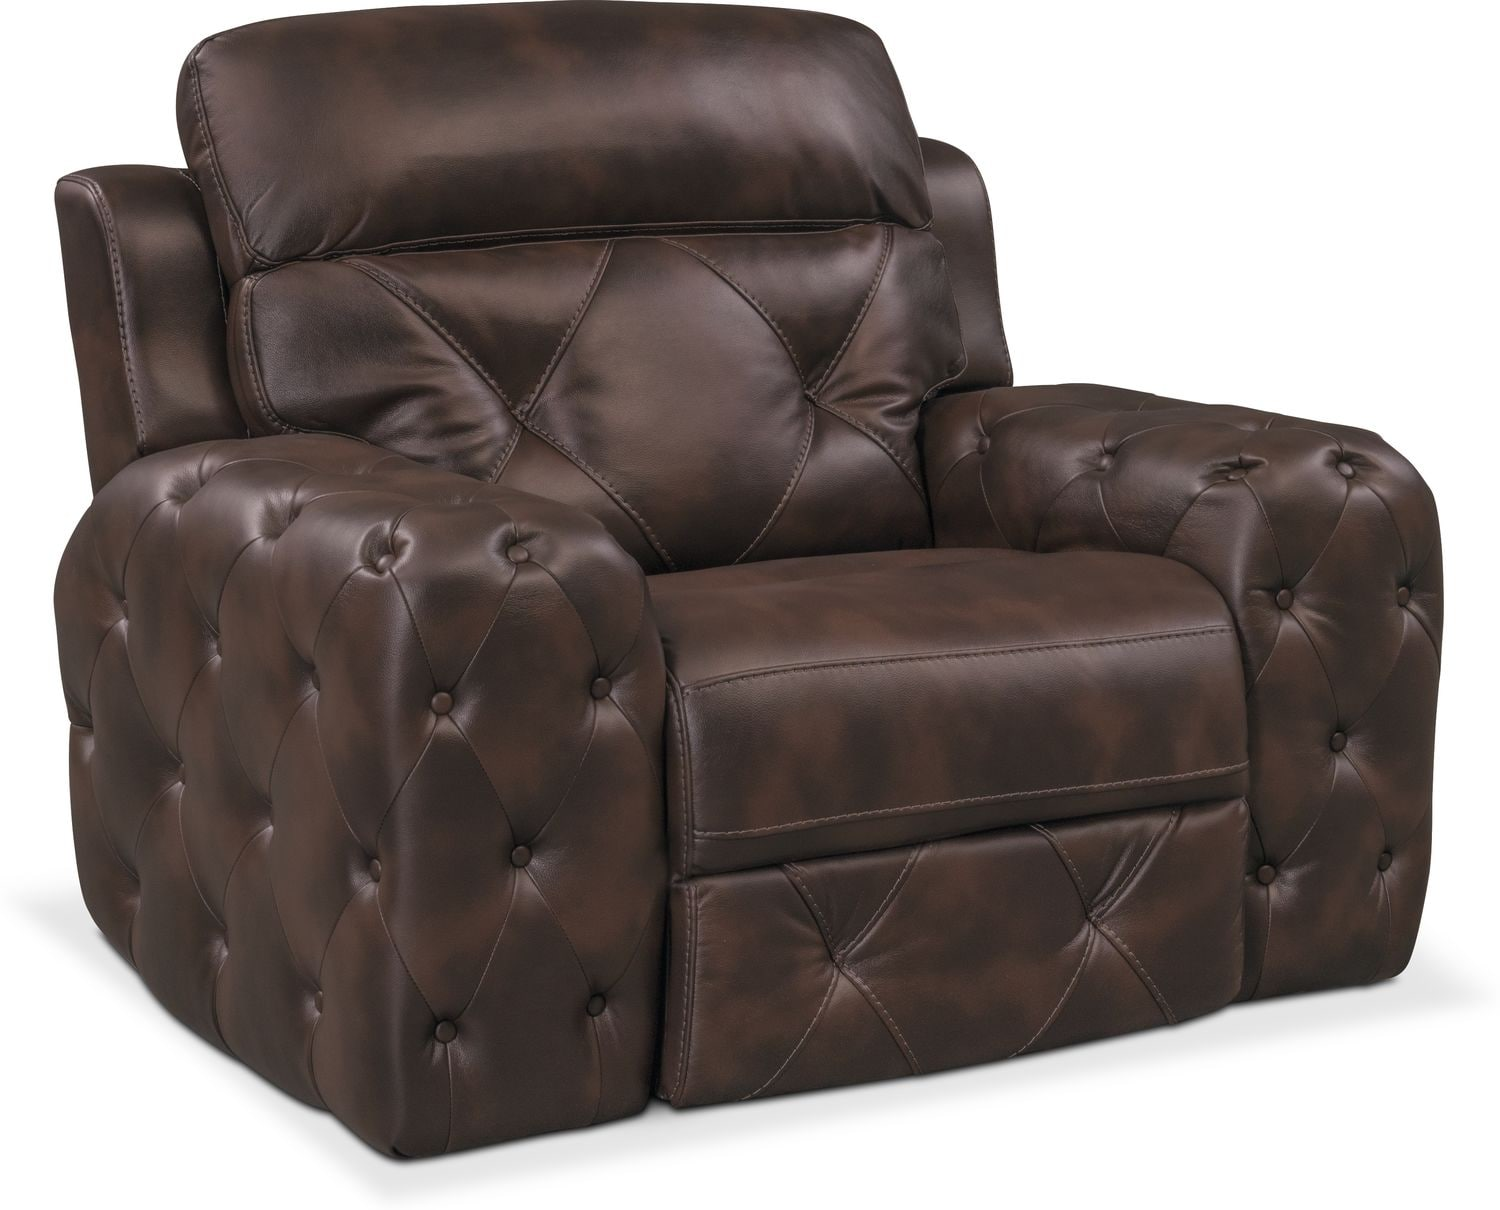 Macklin Power Recliner - Brown  sc 1 st  Value City Furniture & Recliners and Glider Chairs | Value City | Value City Furniture islam-shia.org